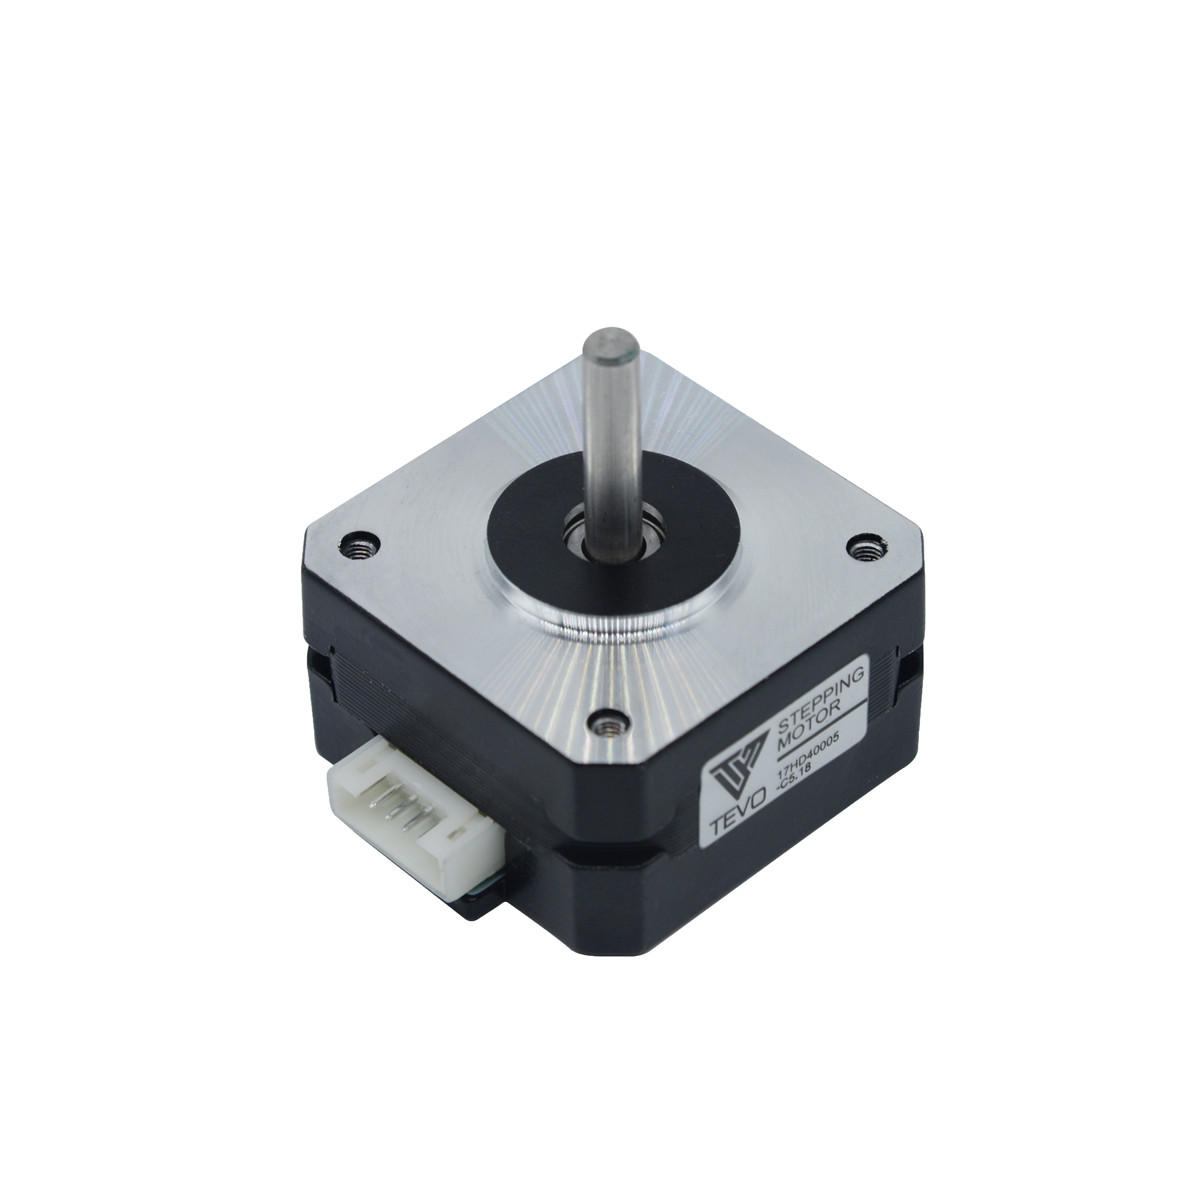 TEVO® 42*42*23mm 12V 2 Phase Titan Stepper Motor For 3D Printer фото